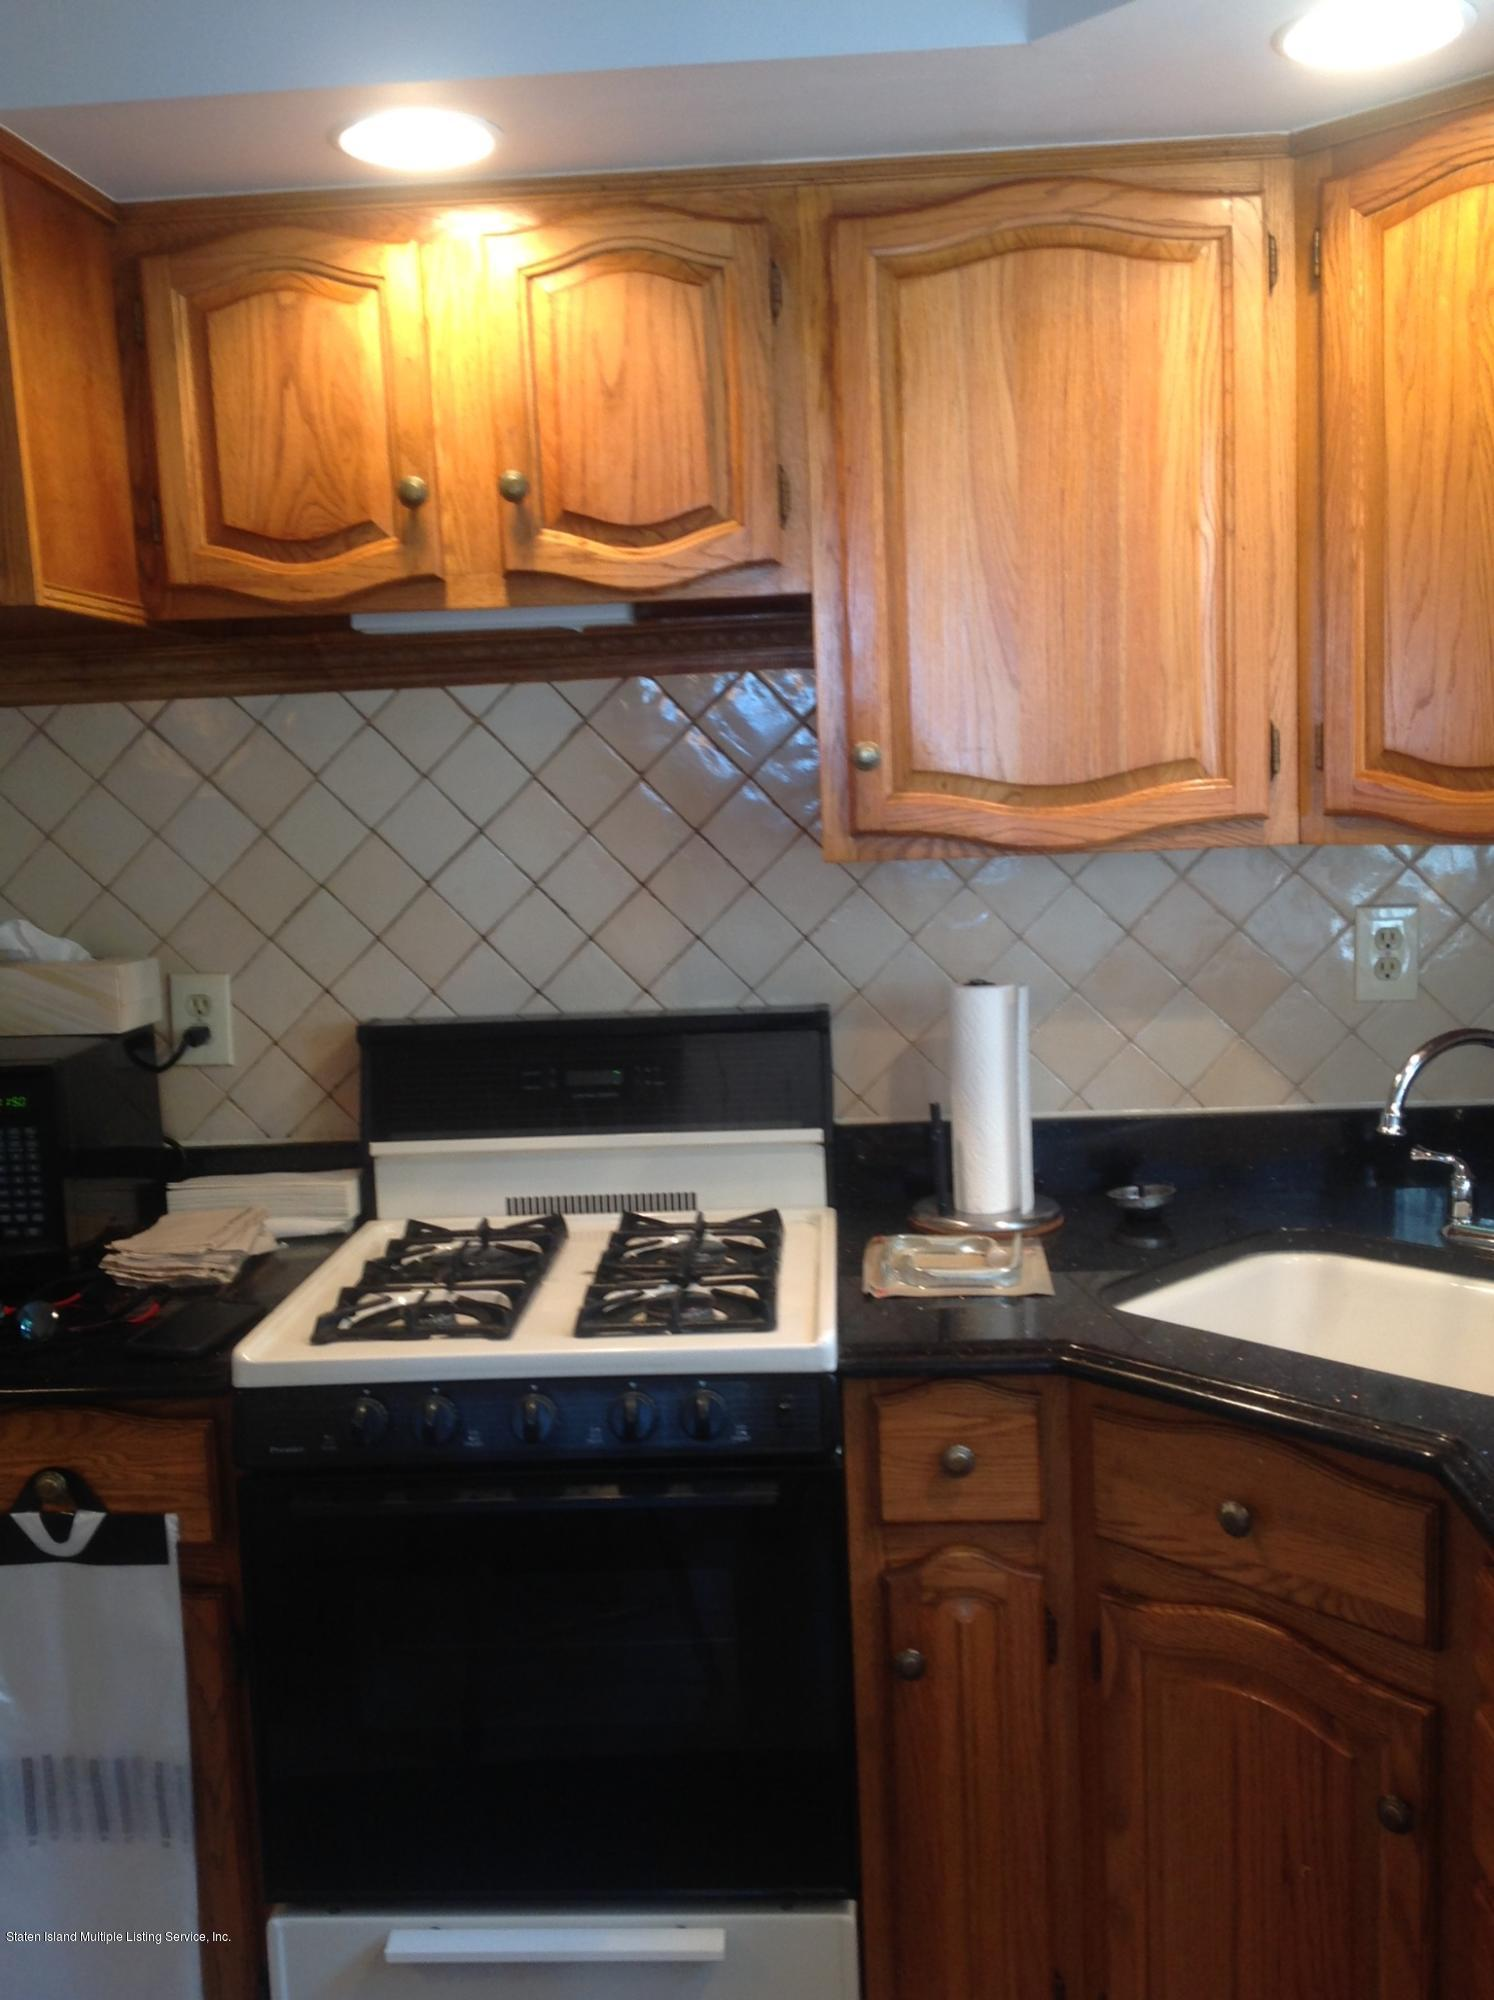 Single Family - Detached 28 Queen Street  Staten Island, NY 10314, MLS-1148779-7